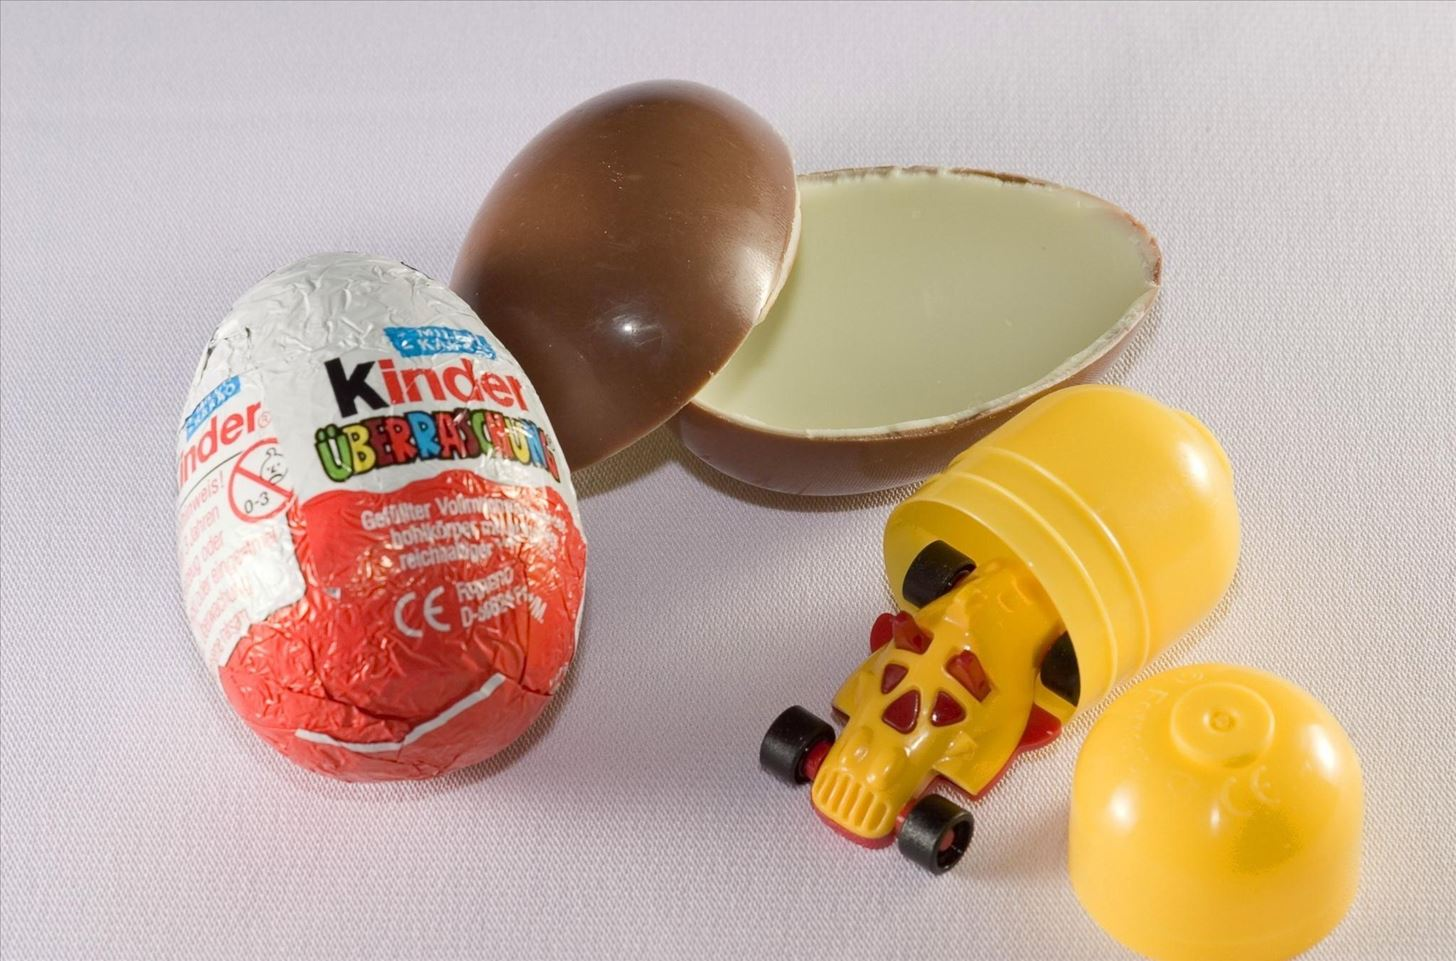 Easter Prank Gold! Sneak a Chocolate-Covered Raw Egg in Their Easter Basket